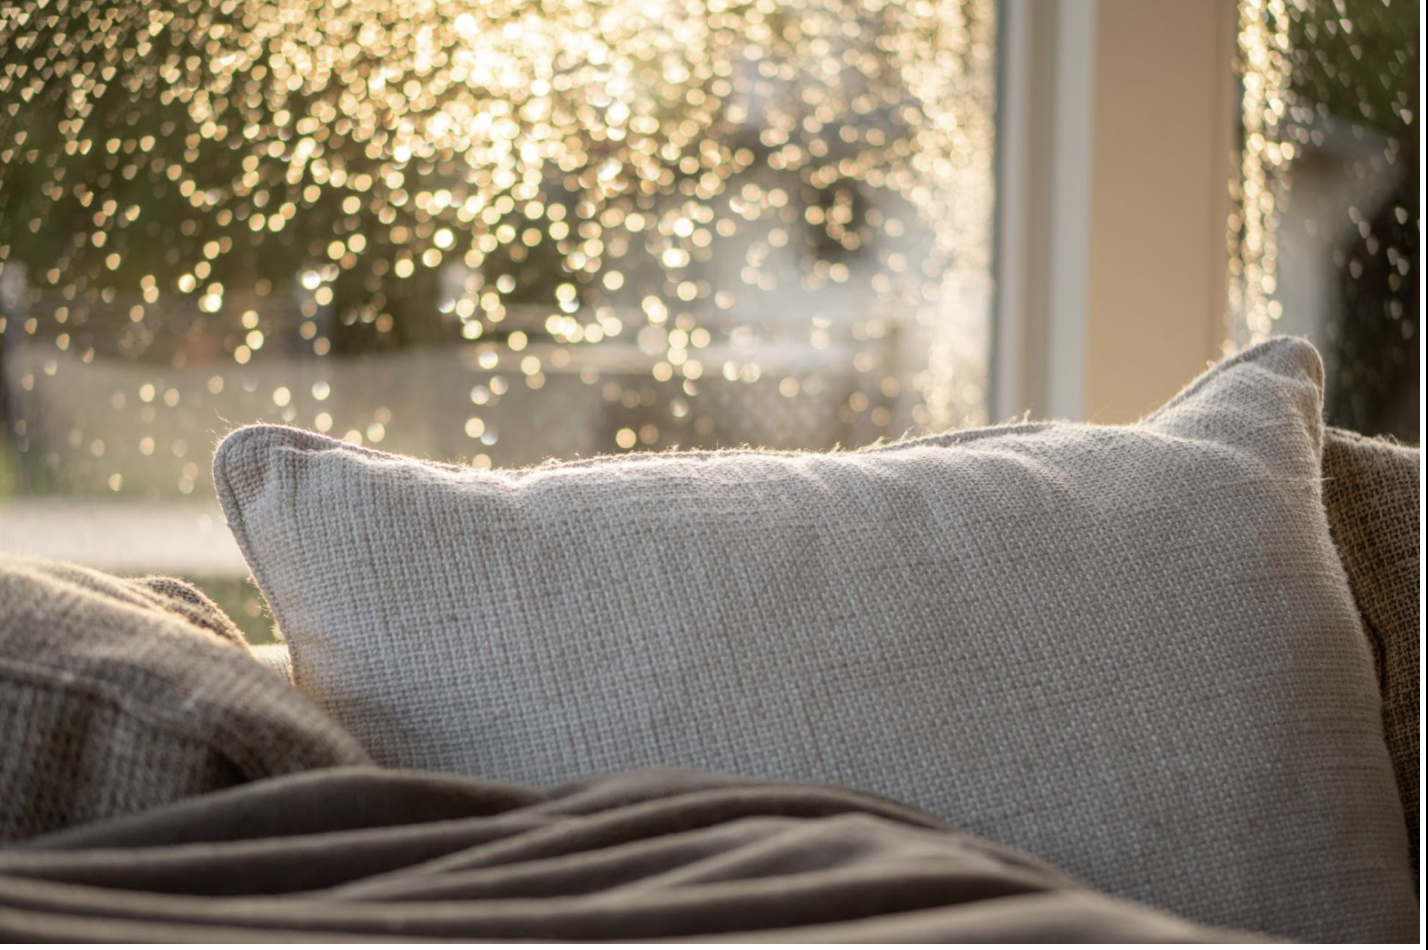 Cosy pillow next to window overlooking chilly exterior